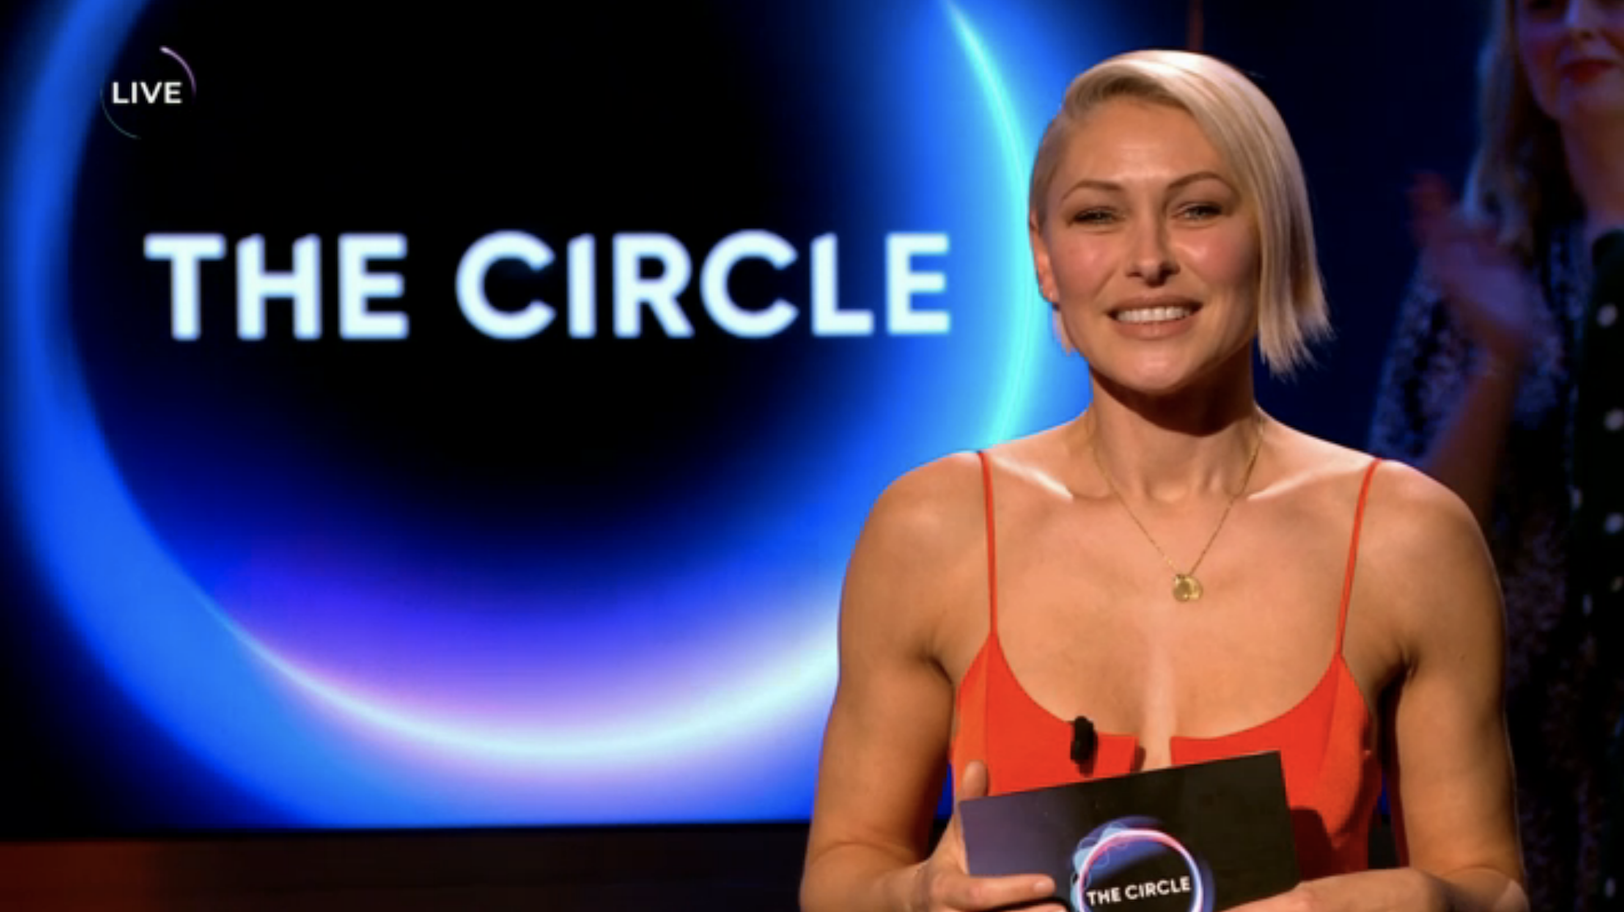 The Circle 2019 has announced its winner